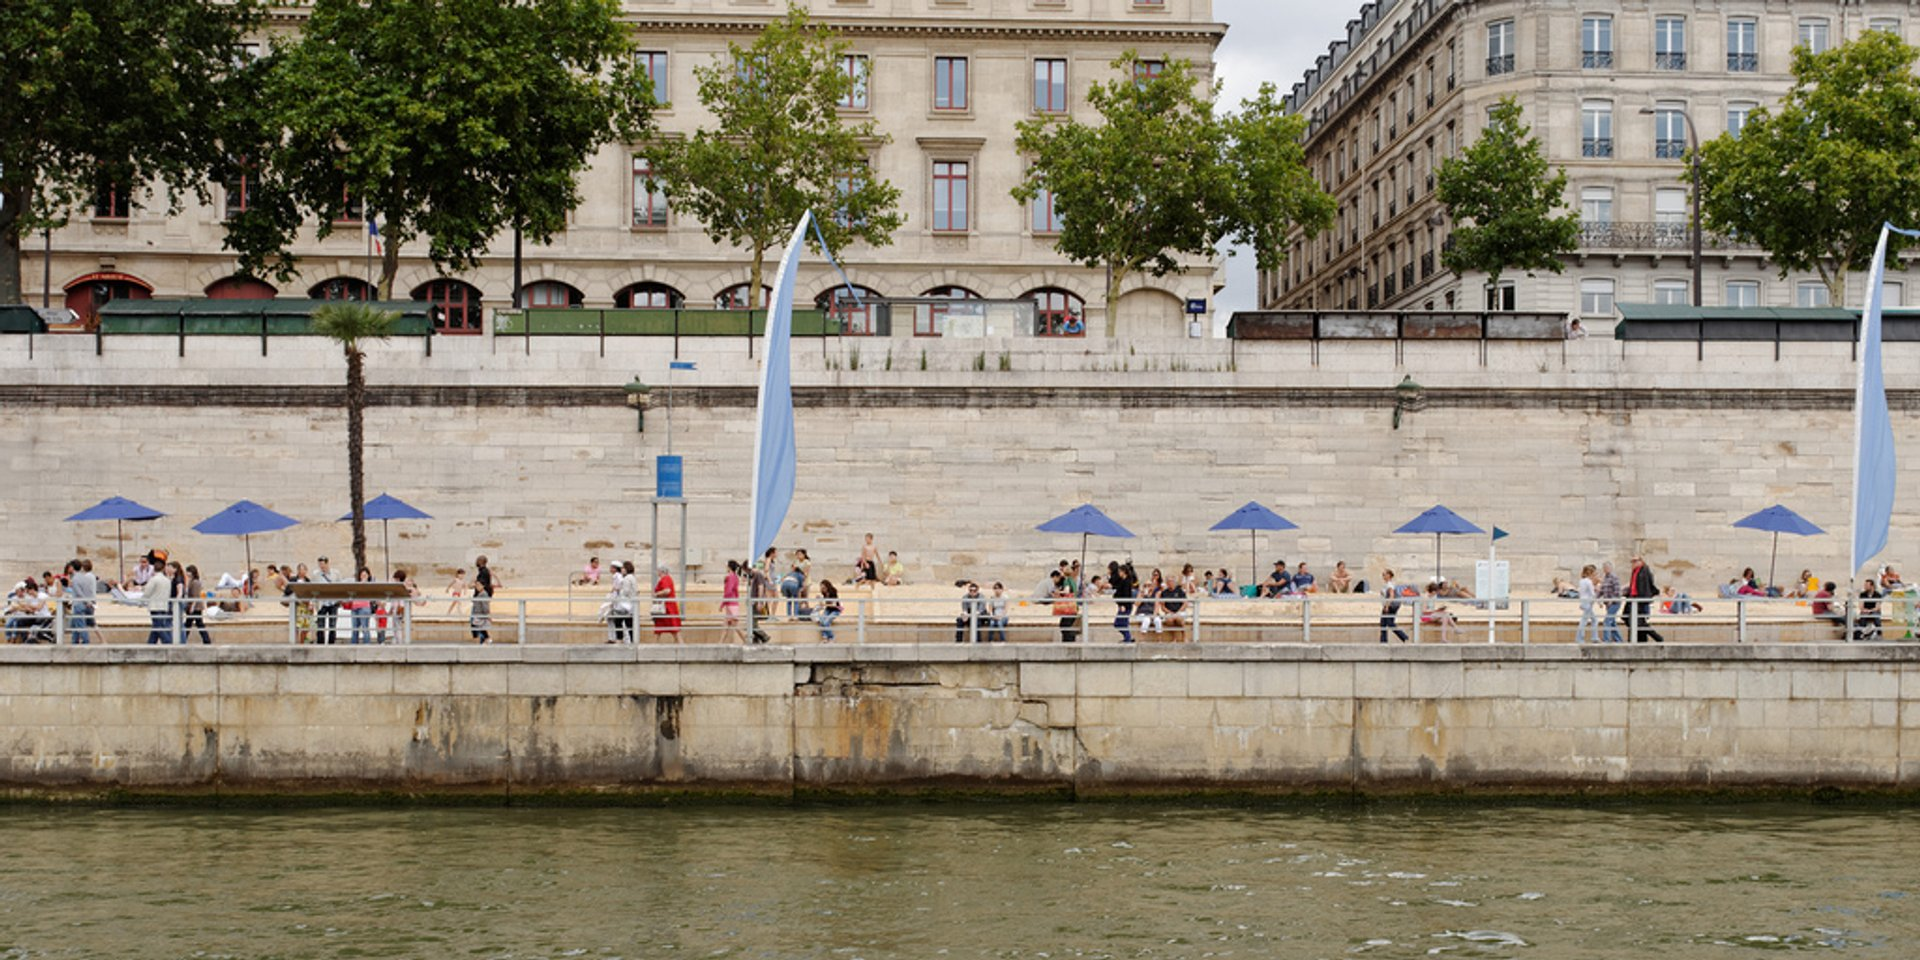 Beaches on the Seine or Paris Plages in Paris - Best Season 2019